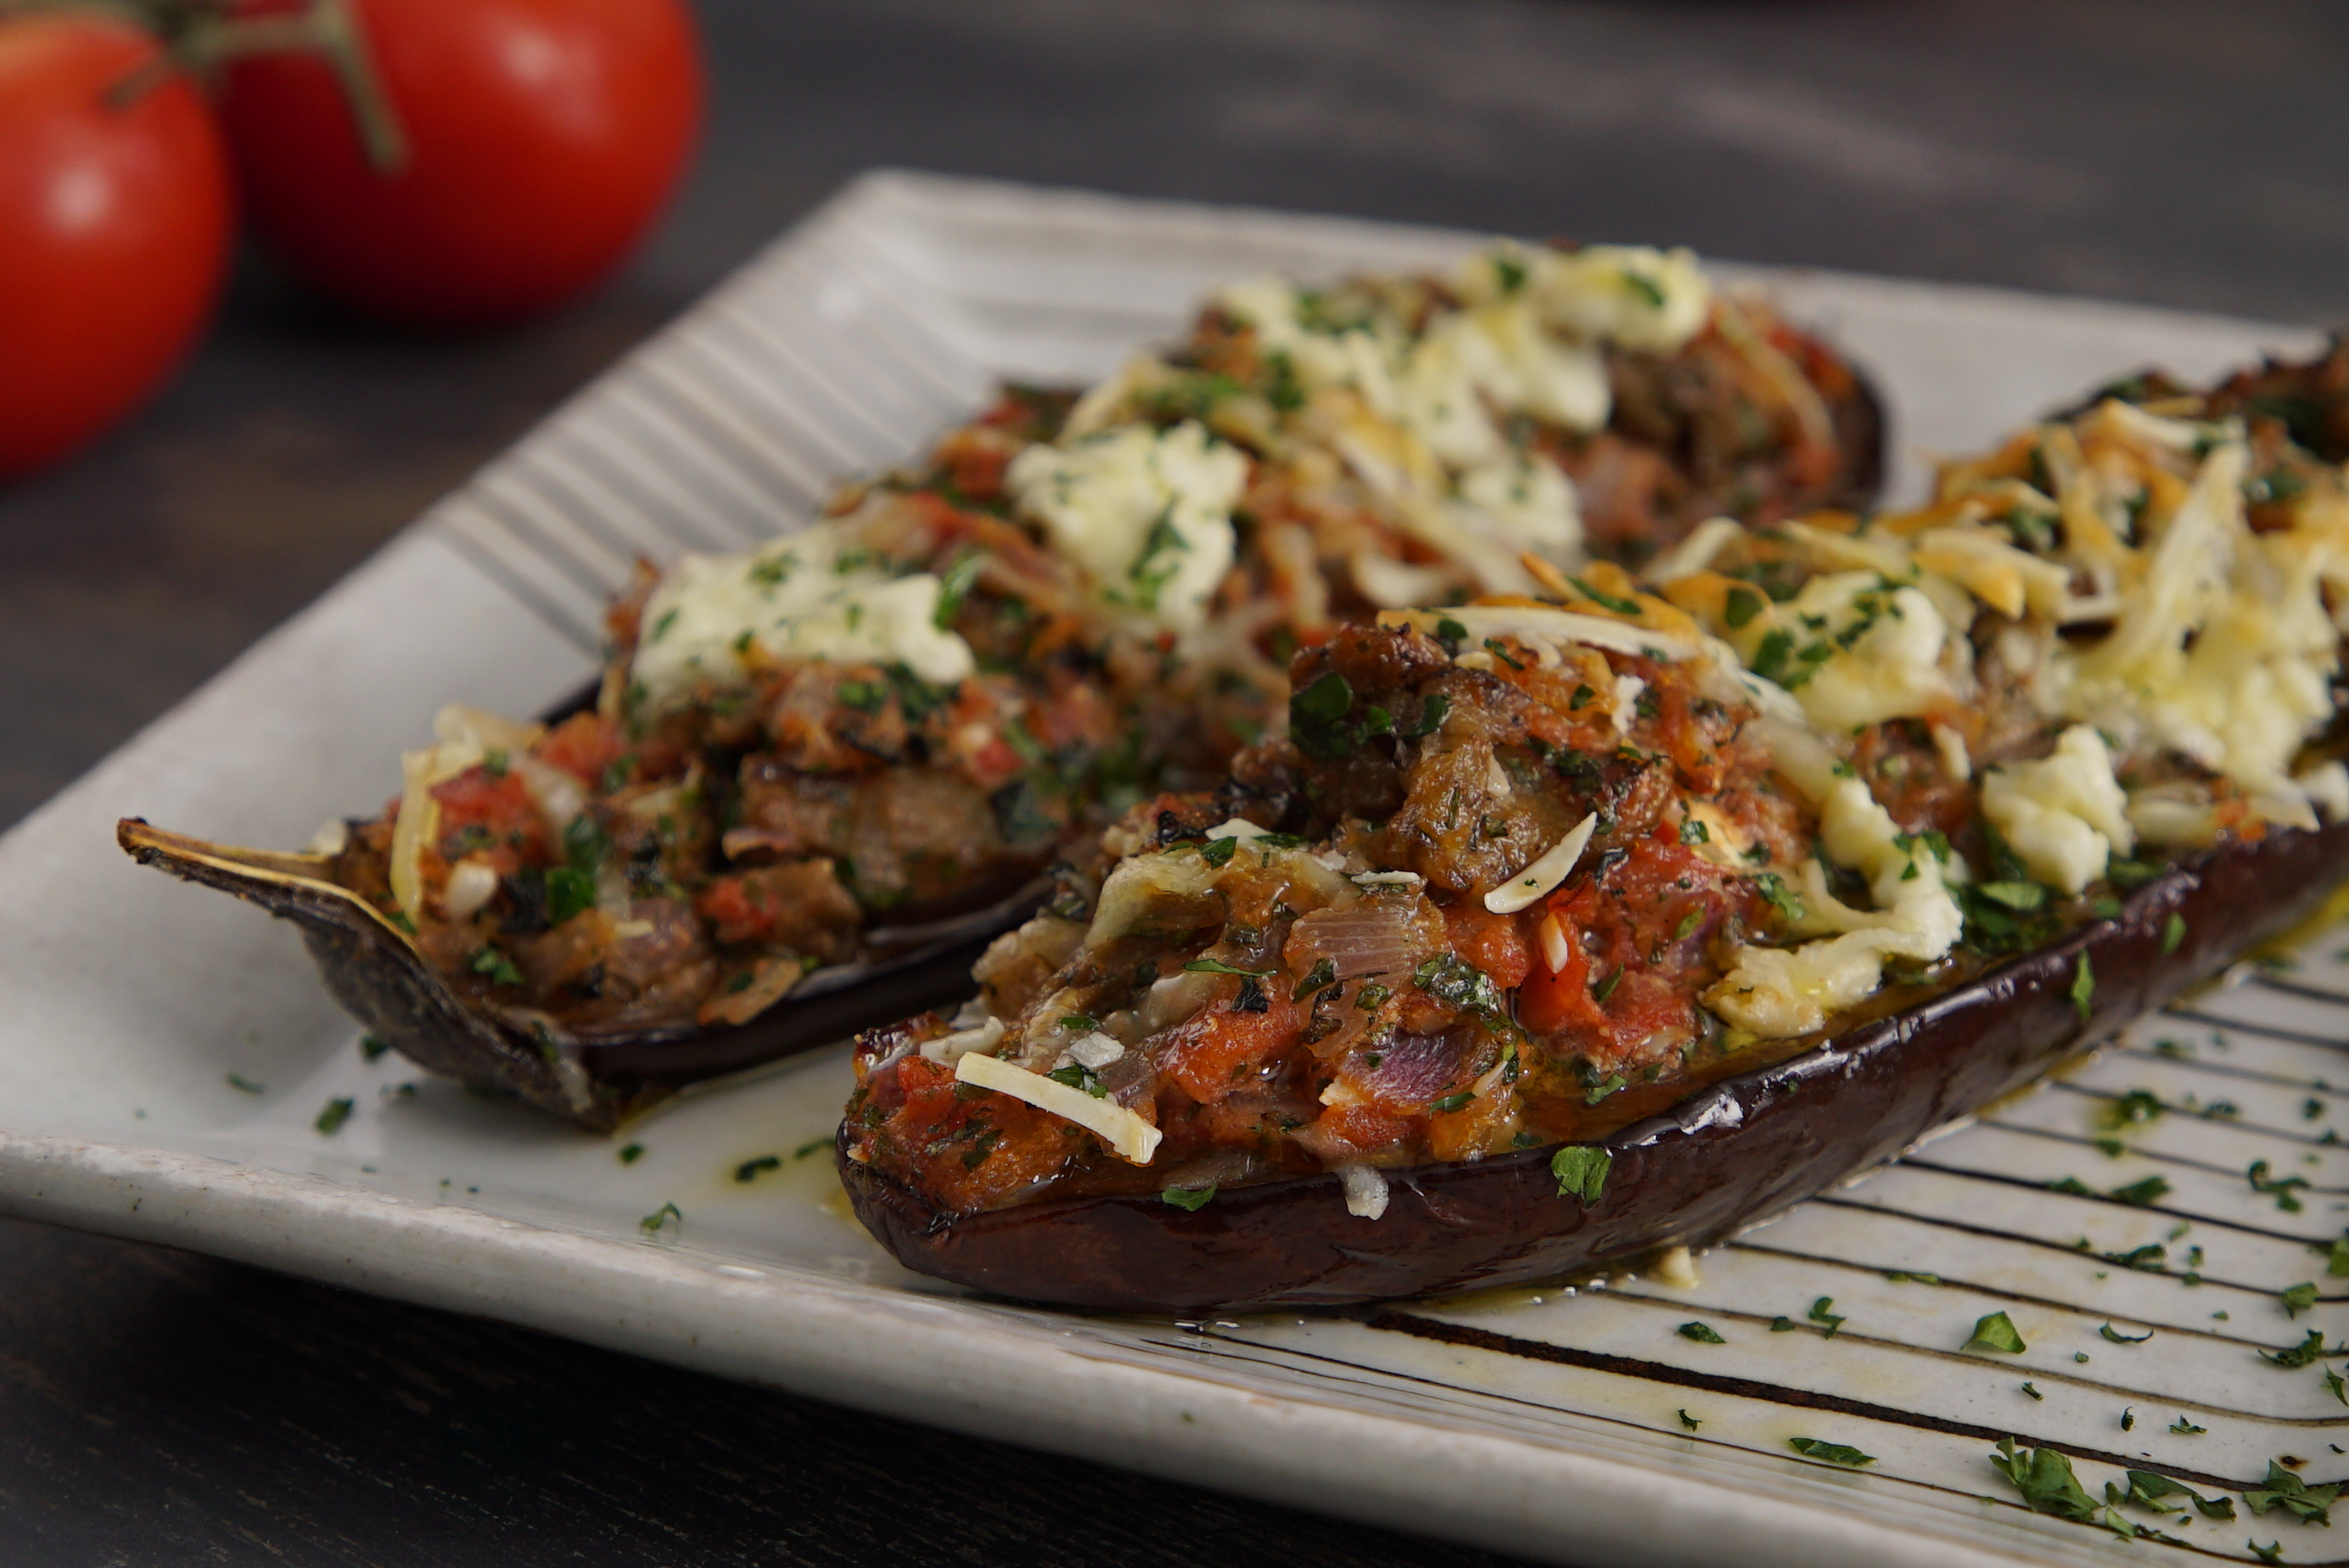 Little Shoes Eggplant Halves Baked With Three Cheeses